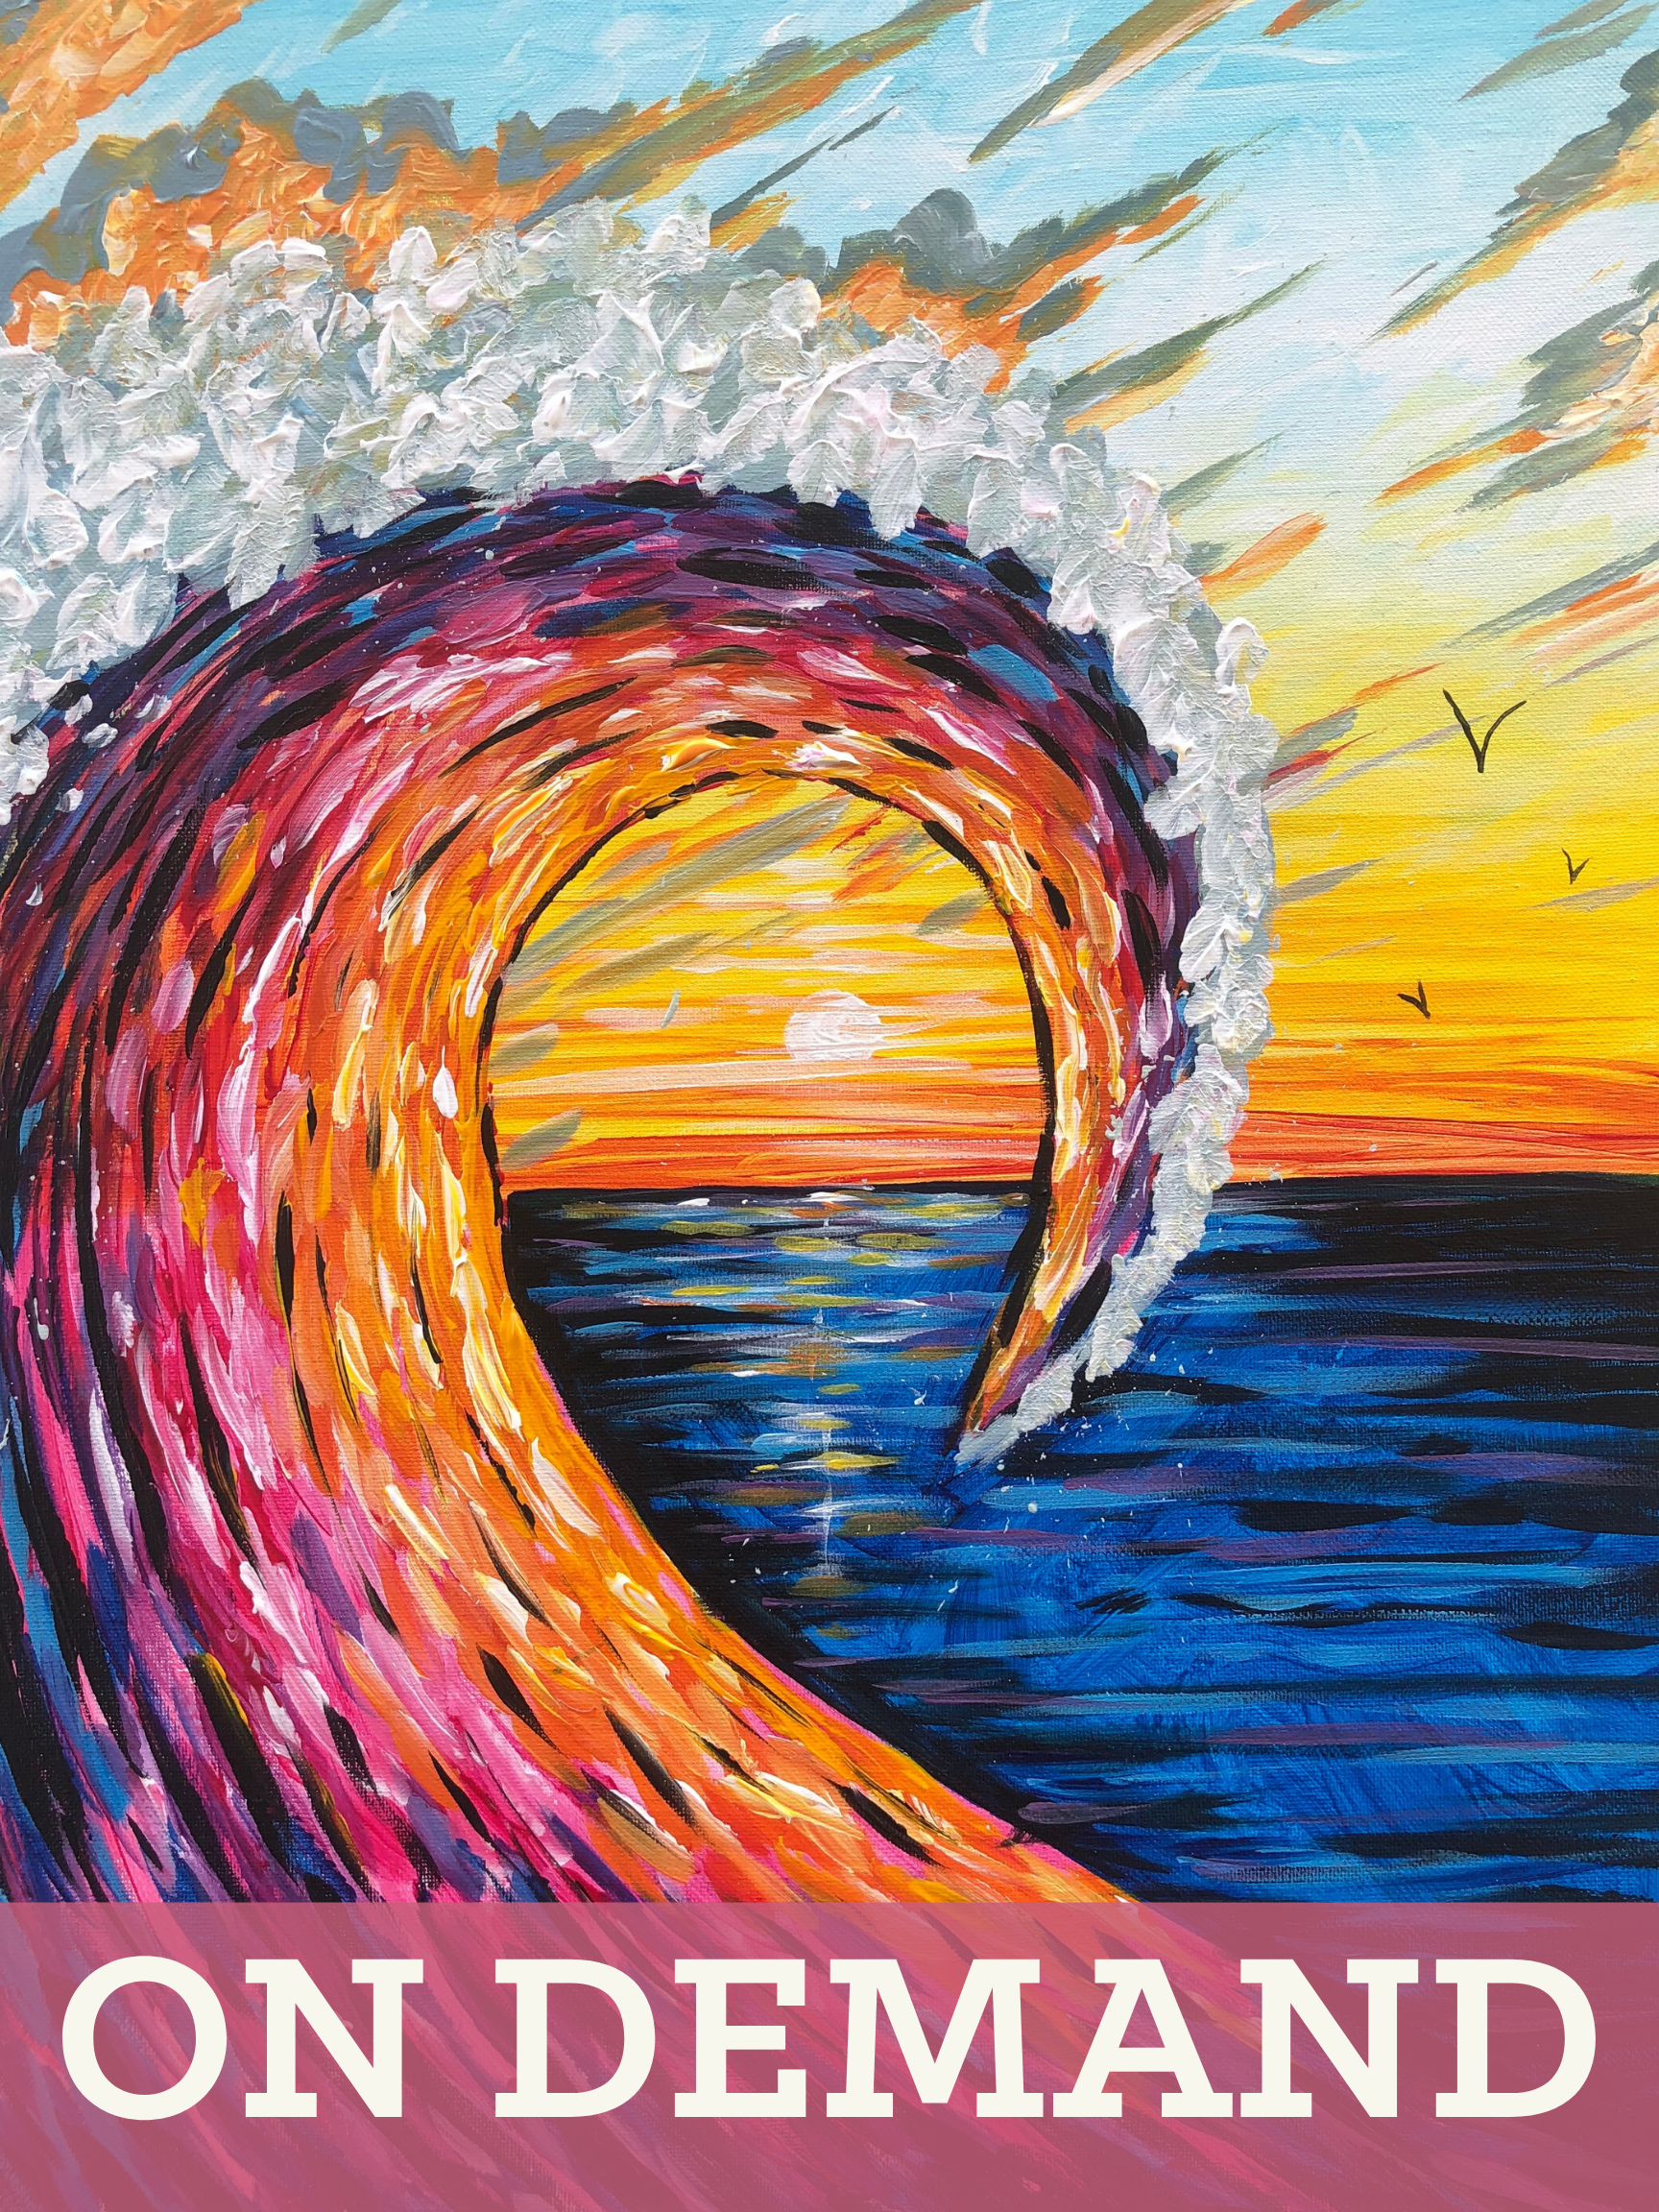 Sunset Wave On Demand Art Class and Paint Kit! (Curbside Pickup Friday 4-6PM)